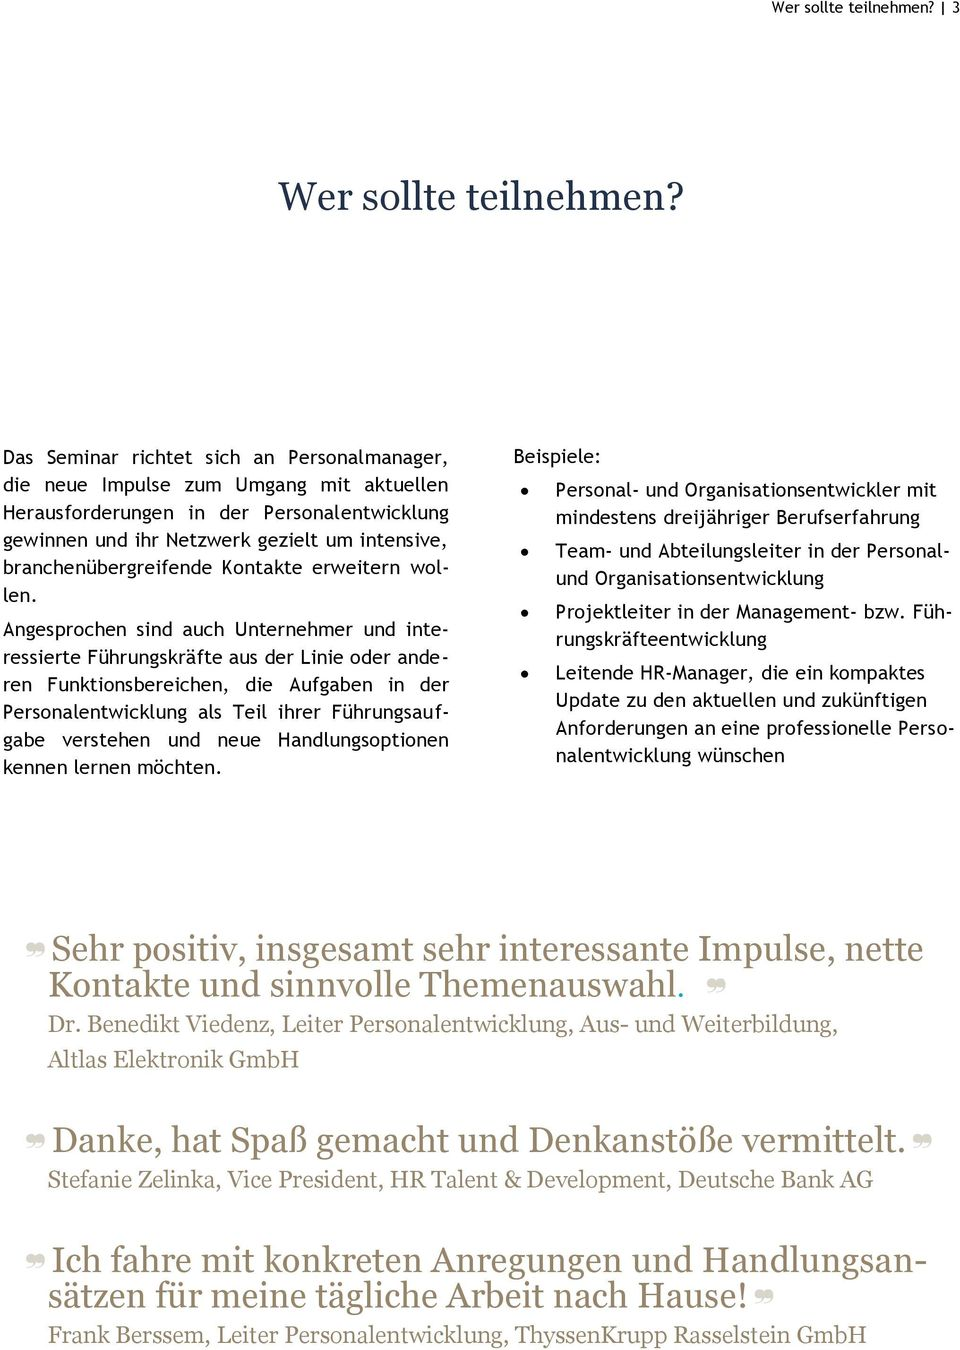 Charmant Neues Emt Beispiel Bilder - Entry Level Resume Vorlagen ...